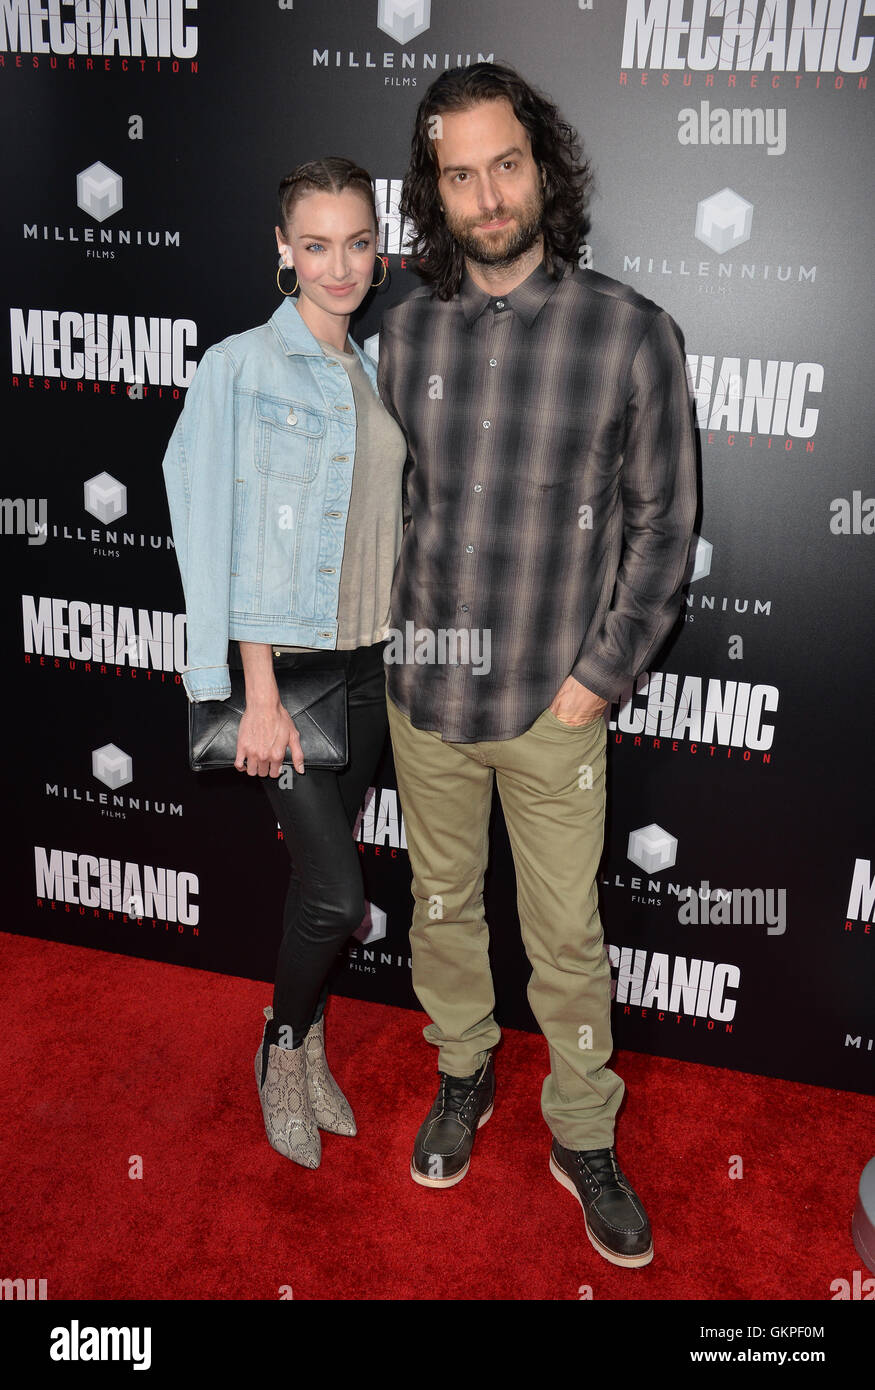 Los Angeles, USA. 22nd Aug, 2016. LOS ANGELES, CA. August 22, 2016: Comedian Chris D'Elia & actress Cassi - Stock Image